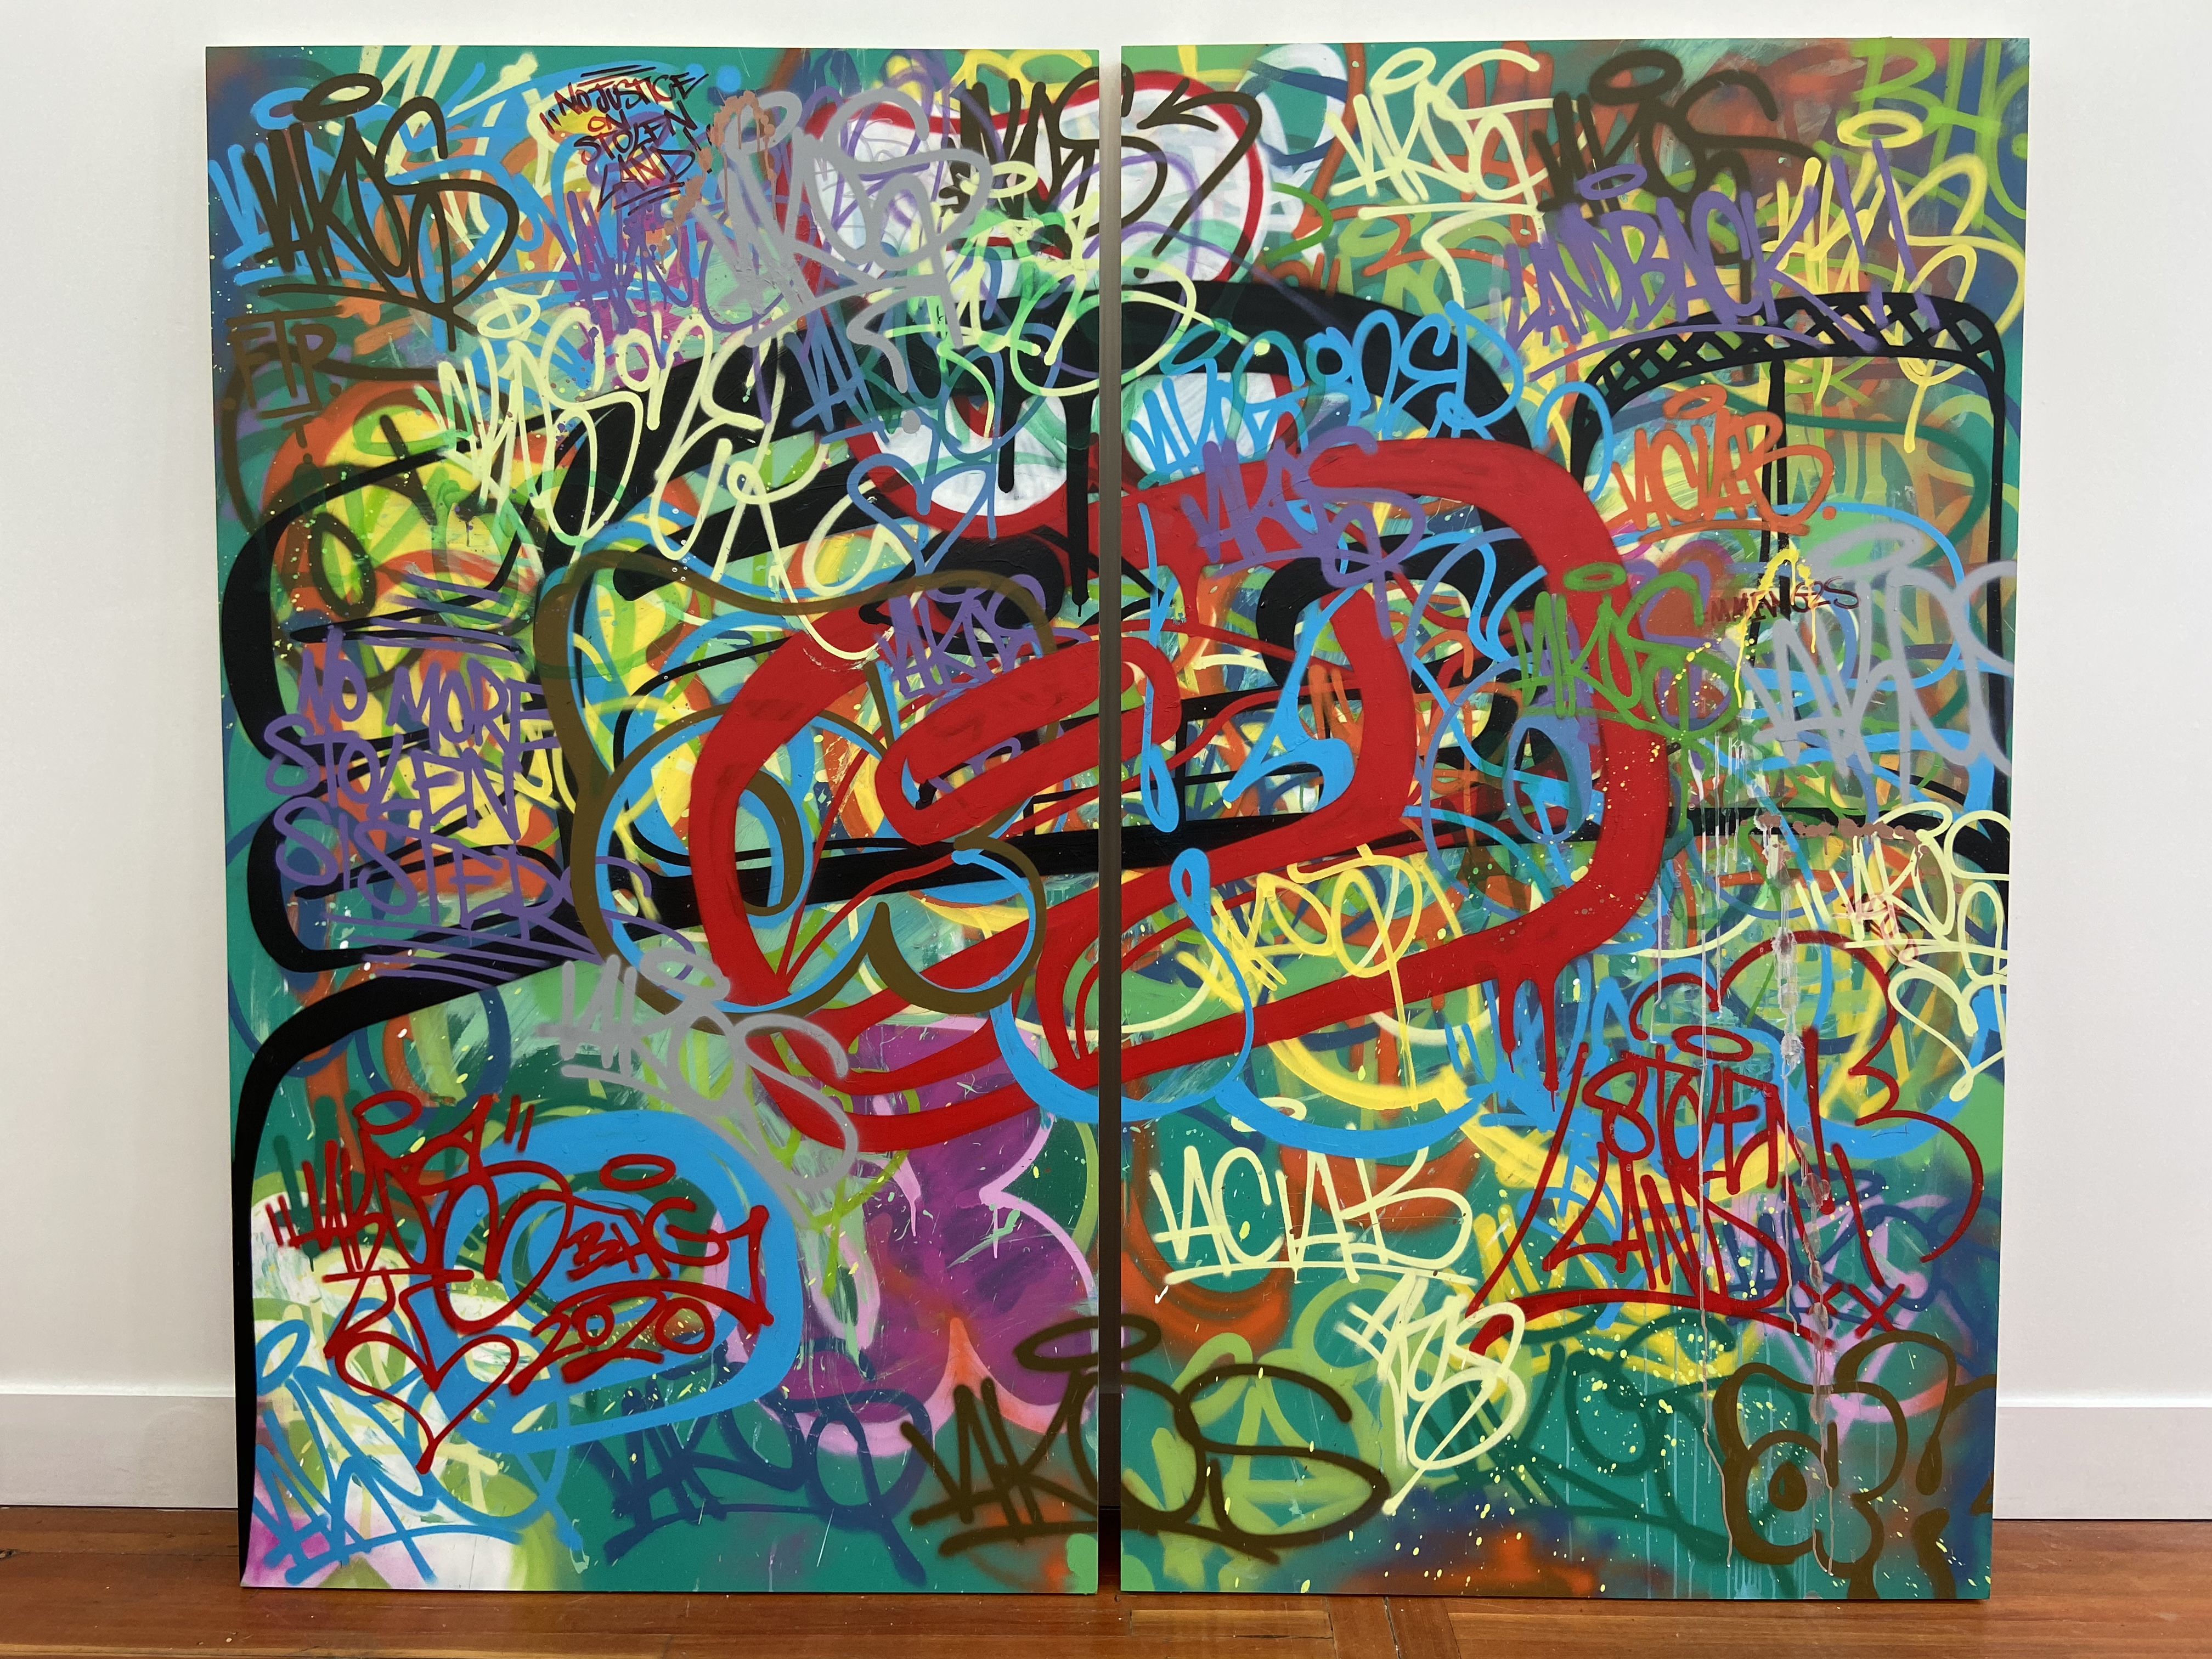 Reclaimed Spaces (diptych), 2020